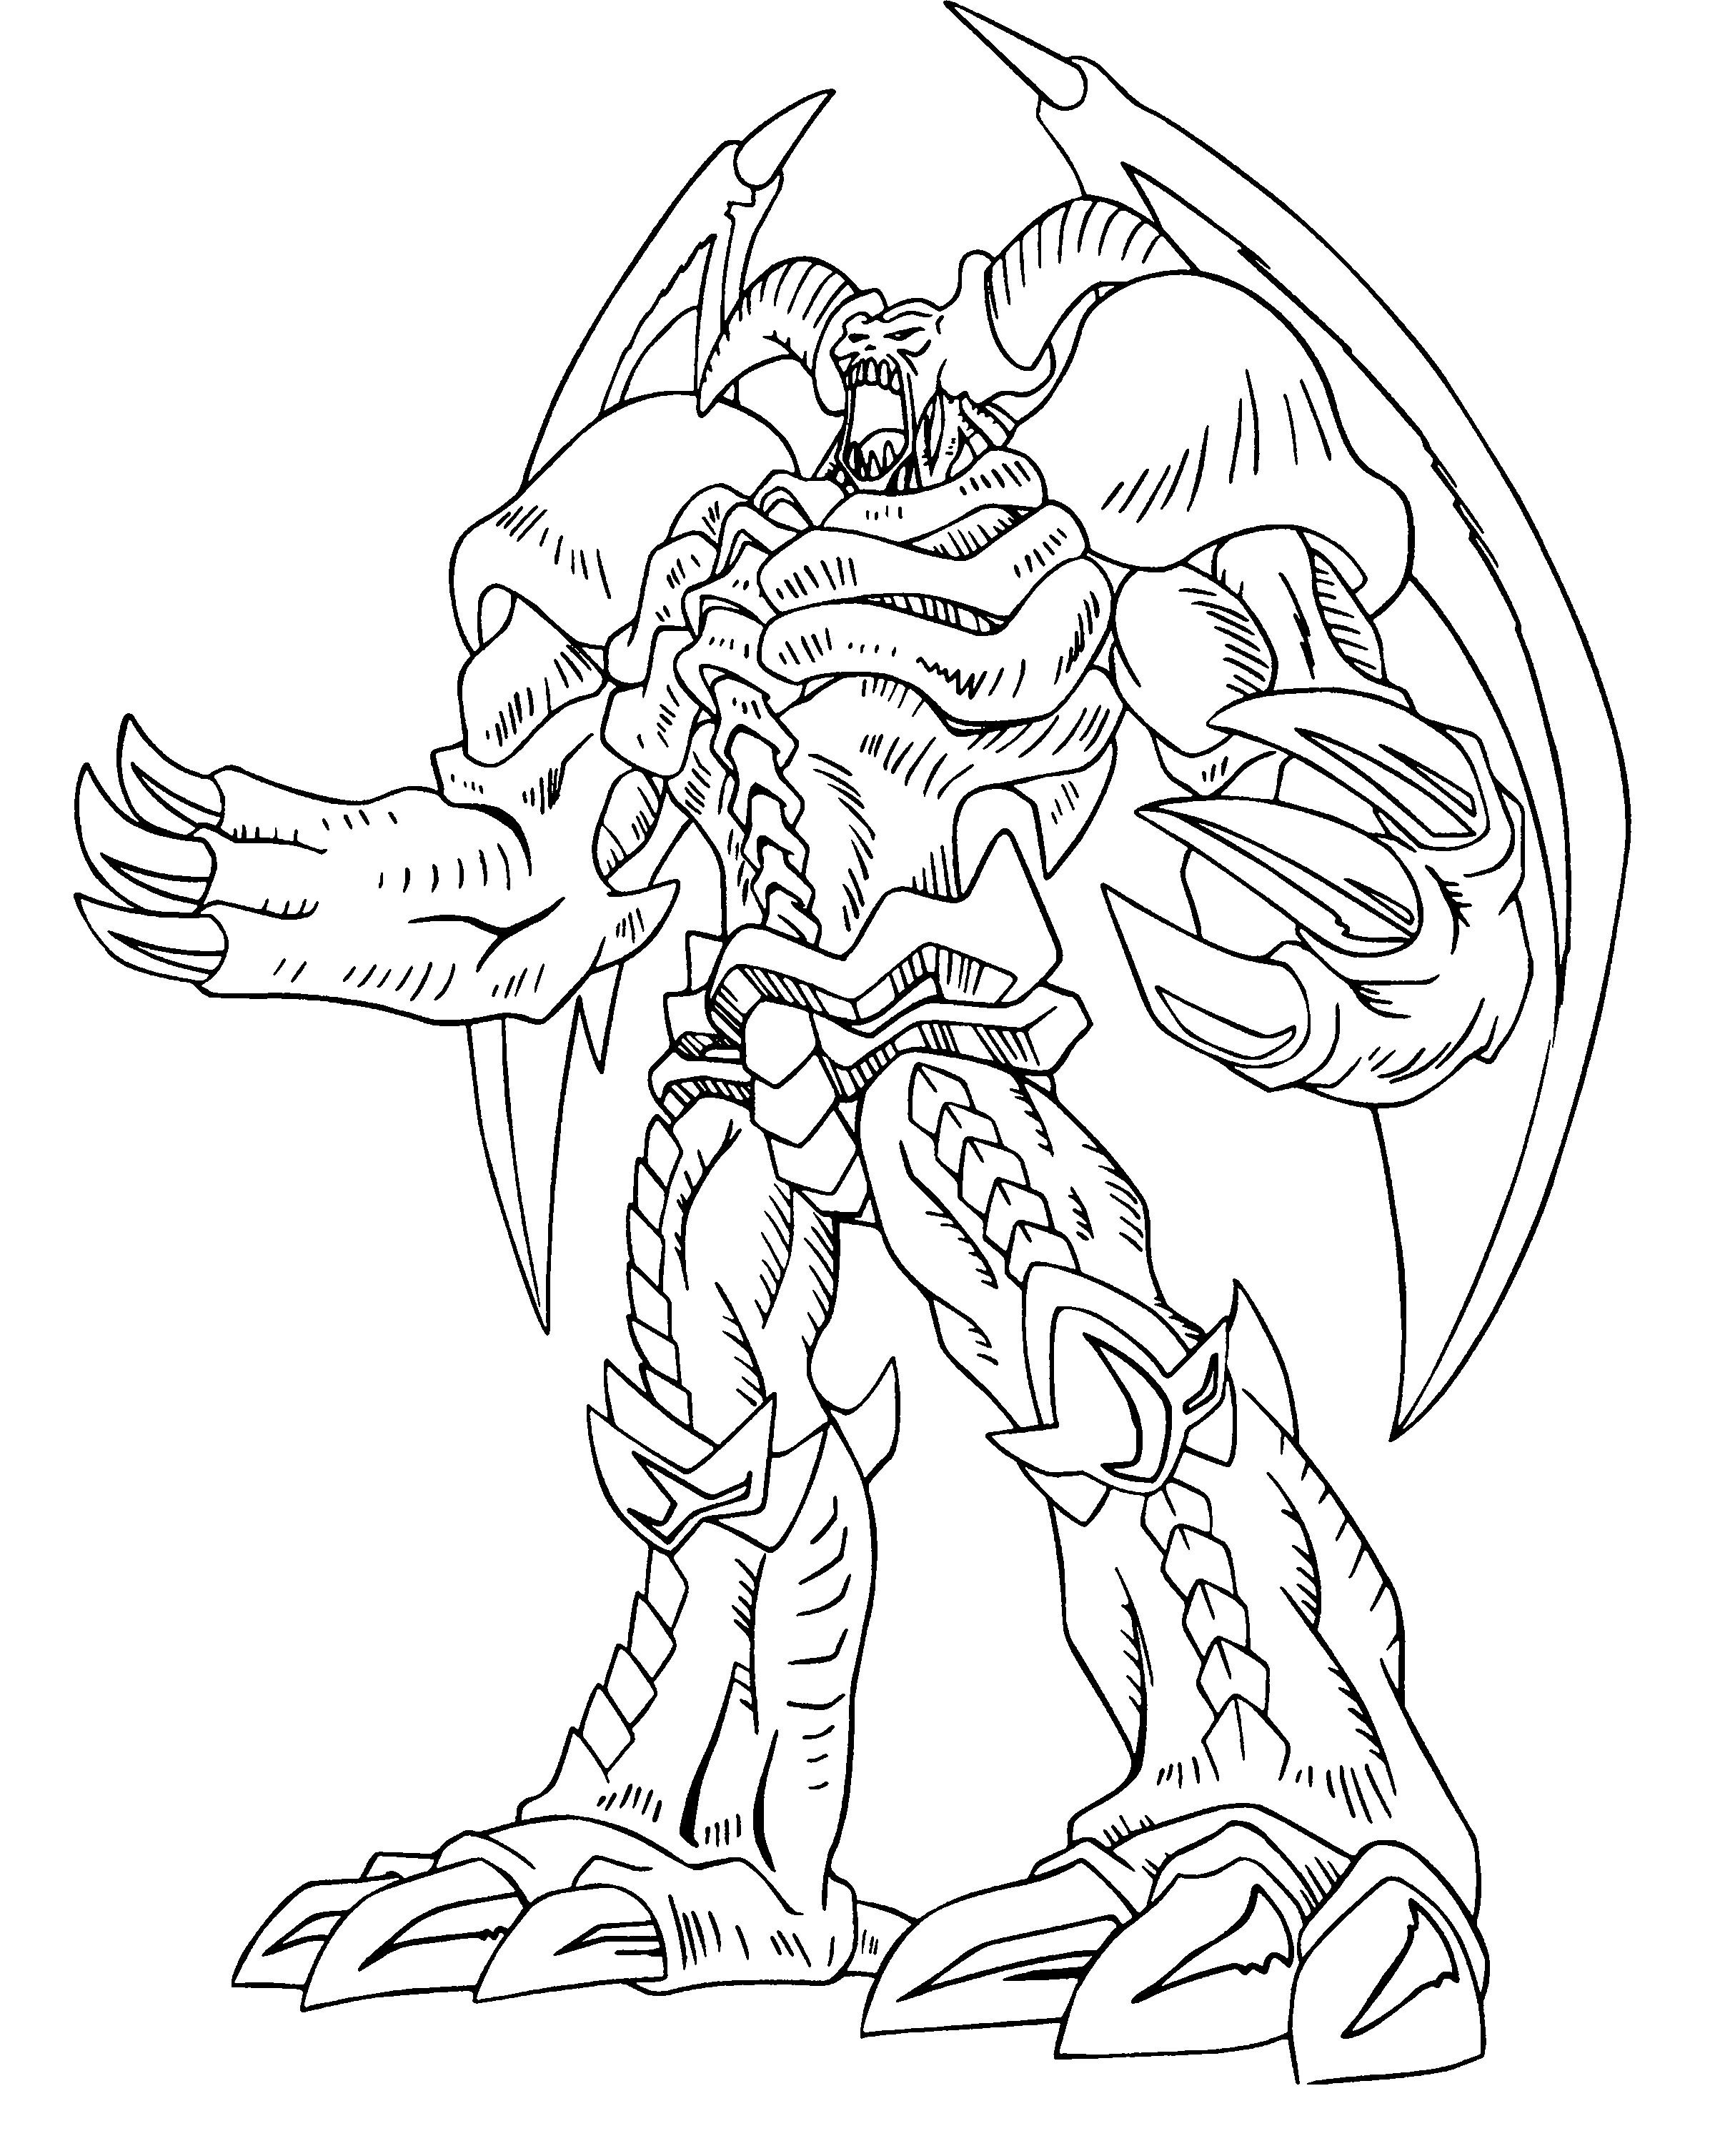 Yu Gi Oh Great Power Coloring Pages Monster Coloring Pages Dragon Coloring Page Animal Coloring Pages